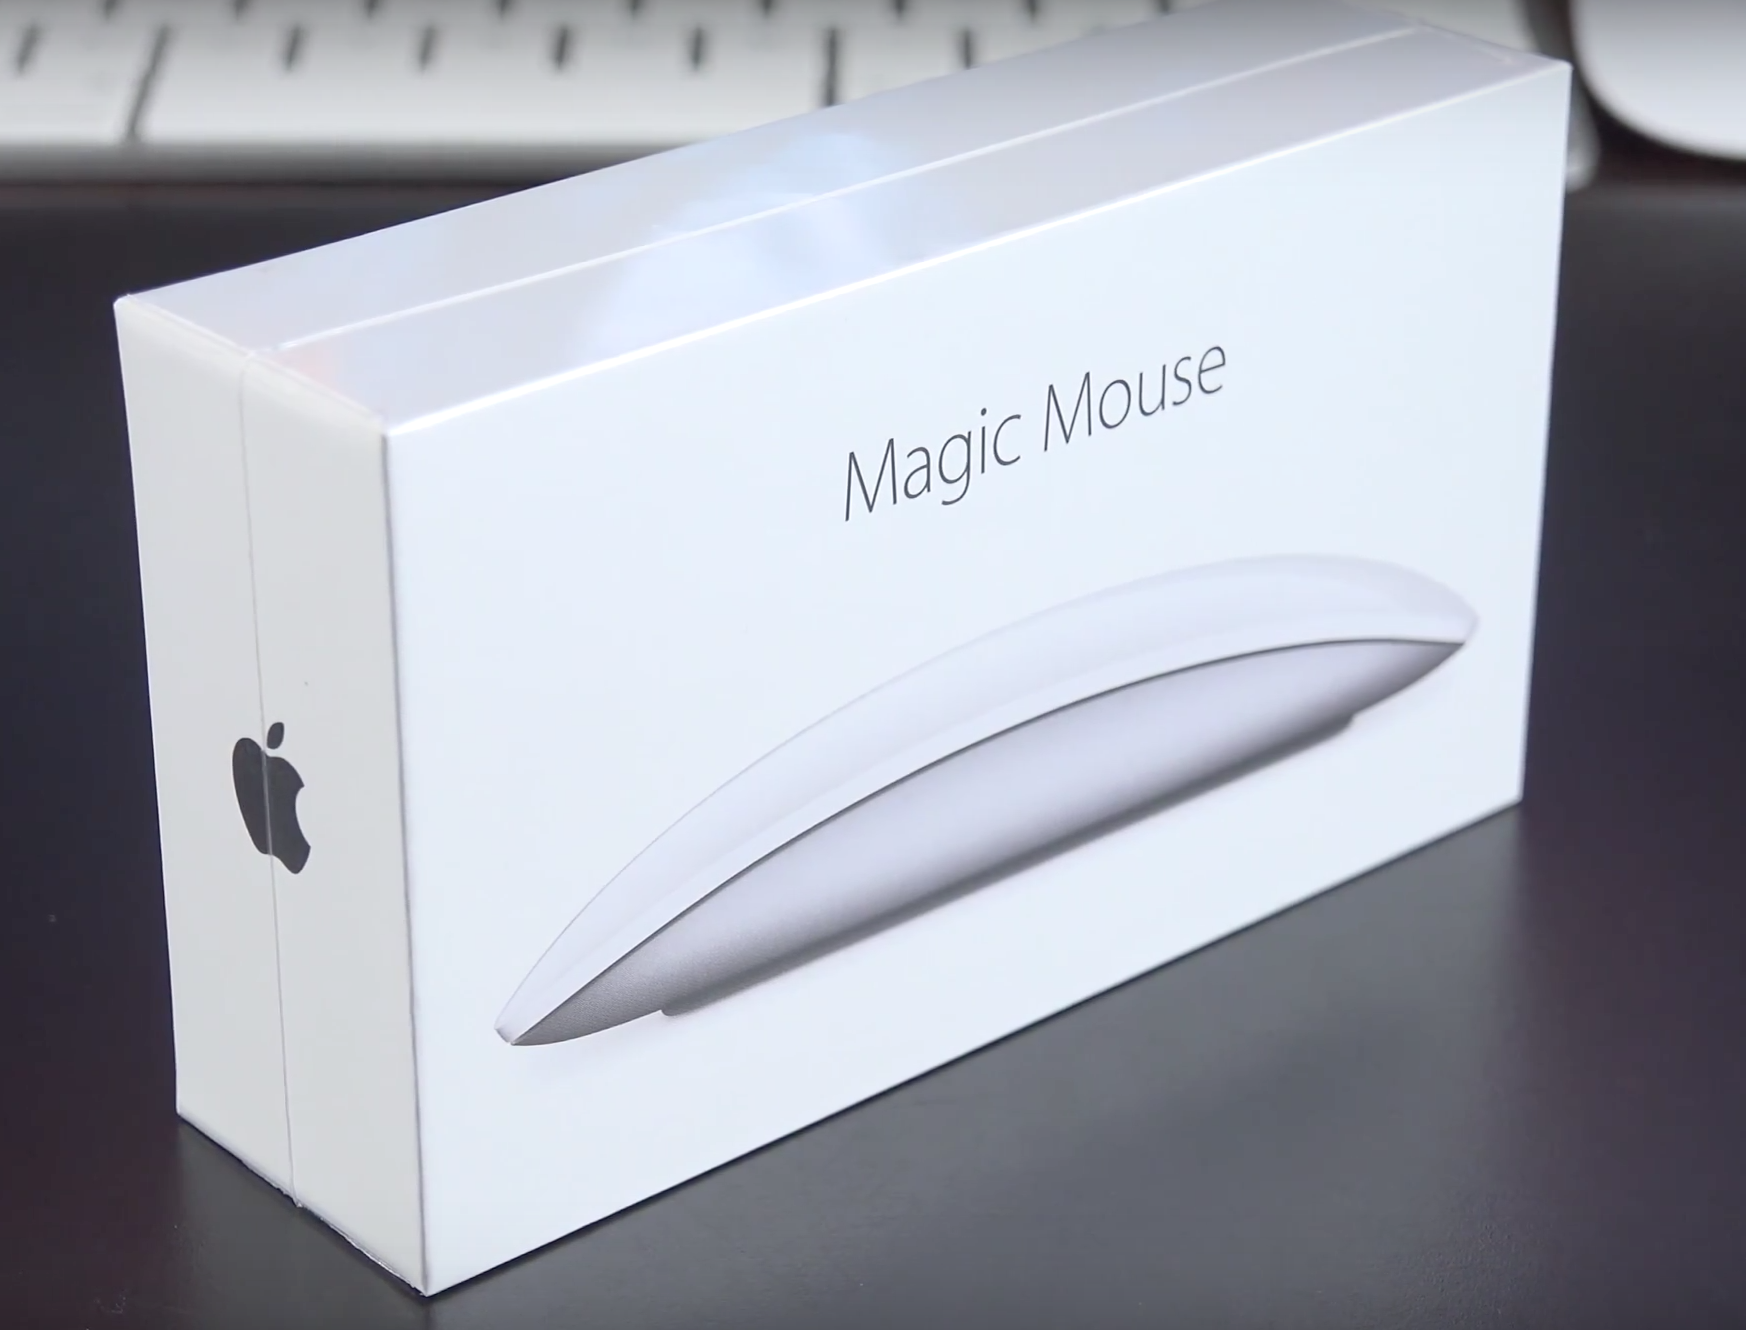 ea963ea02da Video: Apple's Lightning-equipped Magic Mouse 2 gets unboxed and ...